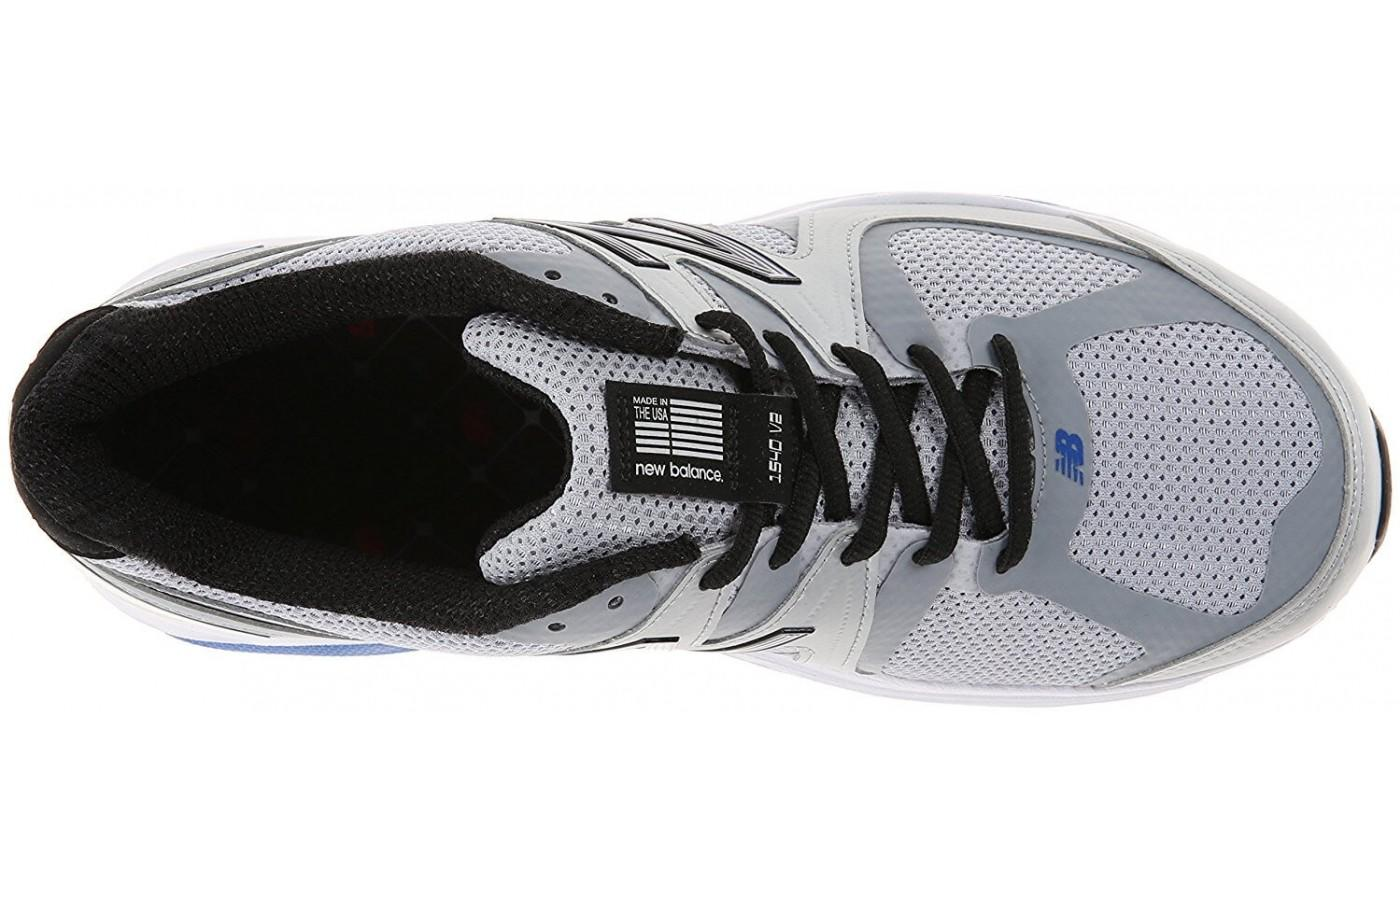 the New Balance 1540 v2's upper provides breathability and support